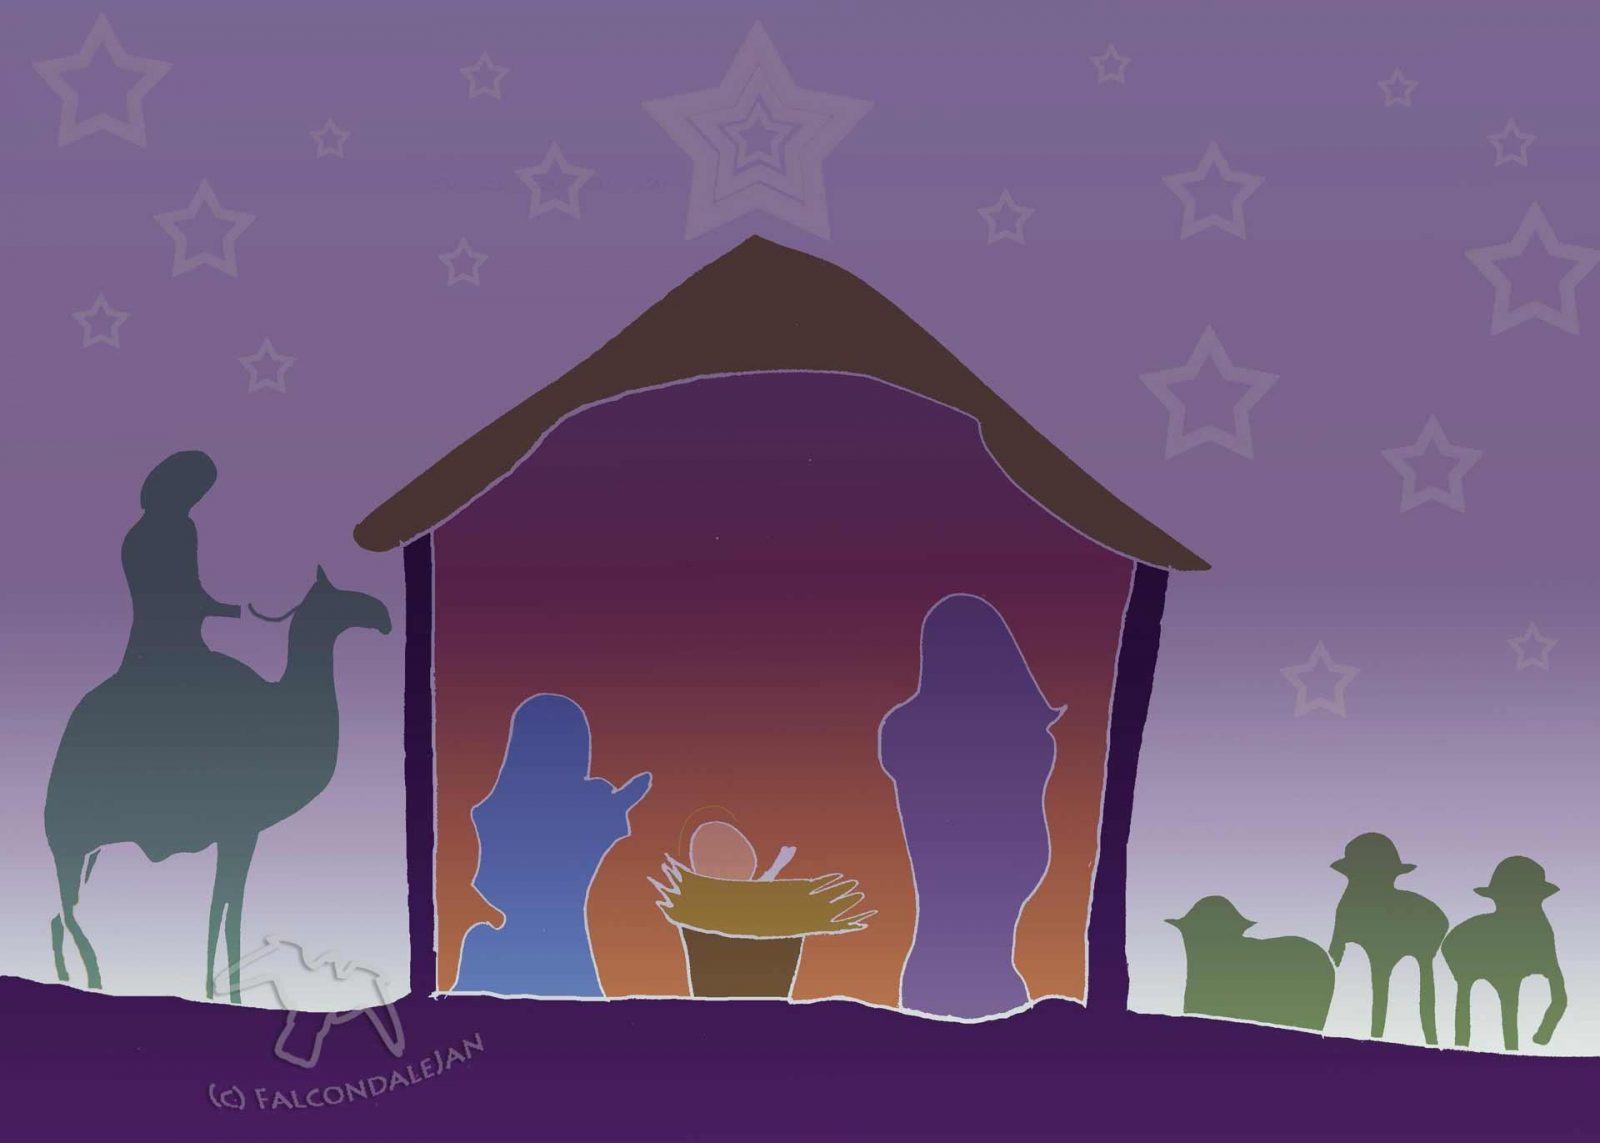 The Nativity on Falcondale Life blog - a vector image by the blog author